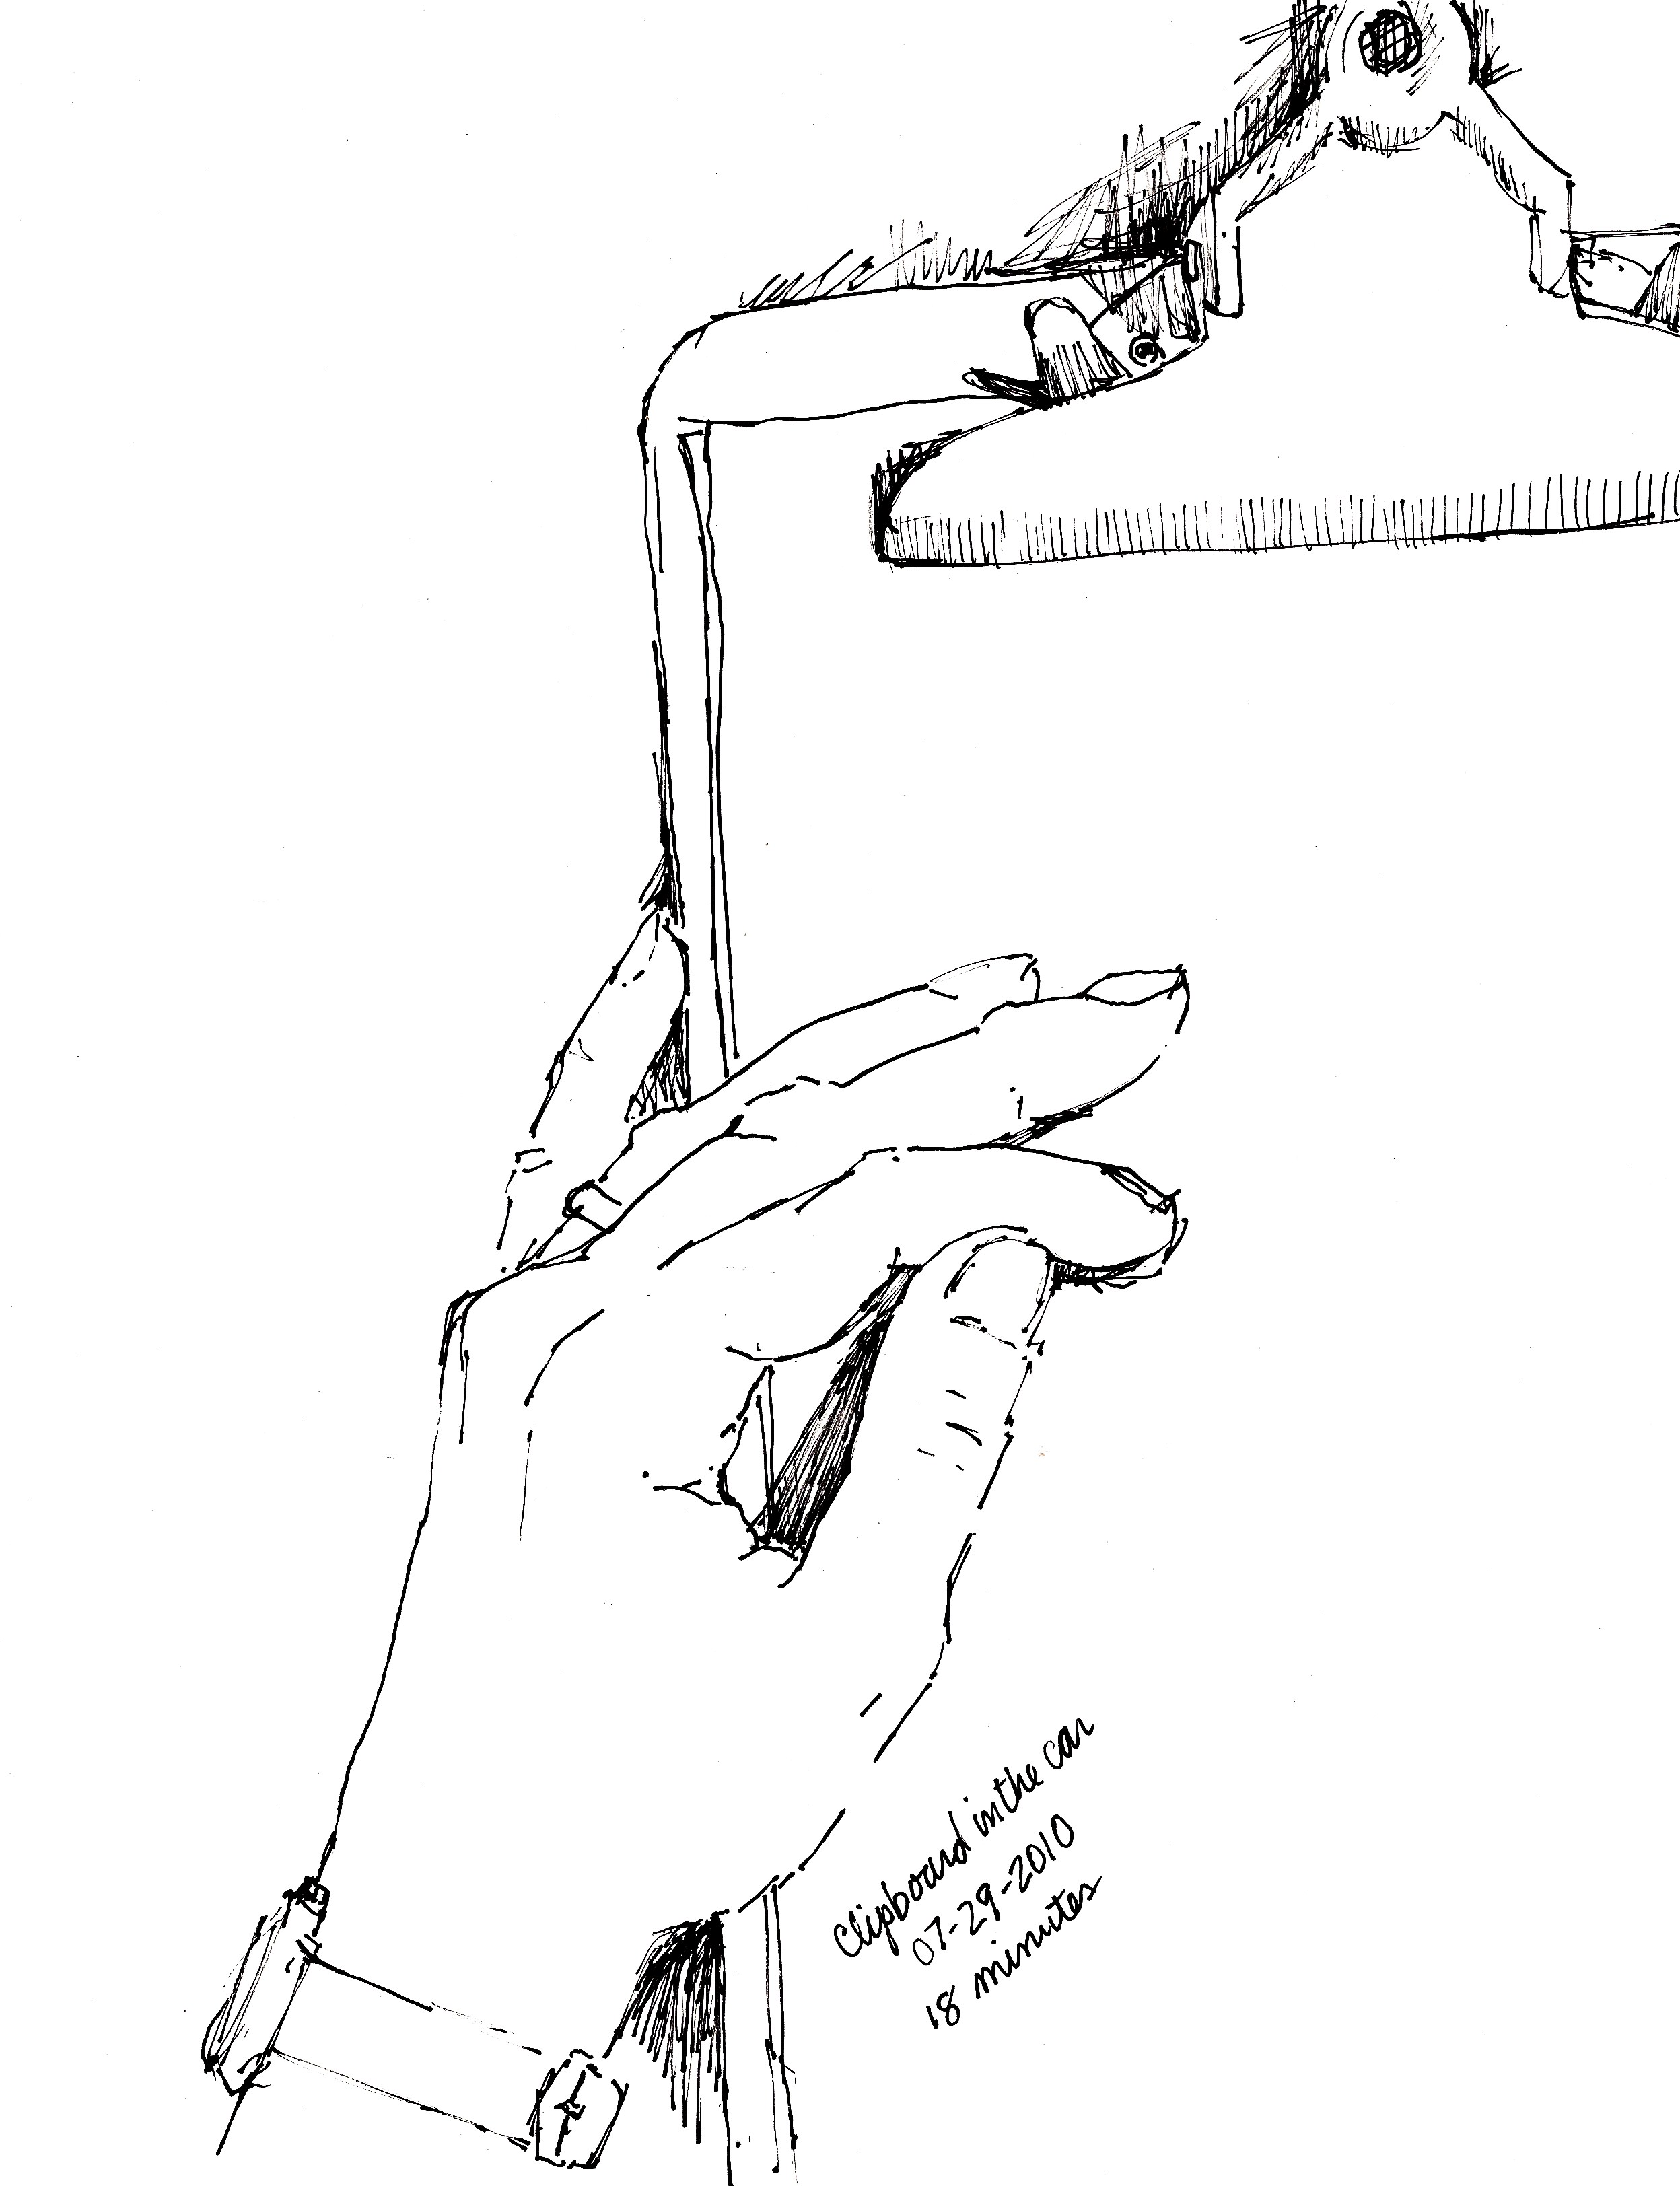 Drawn purse hand holding My of by same purse